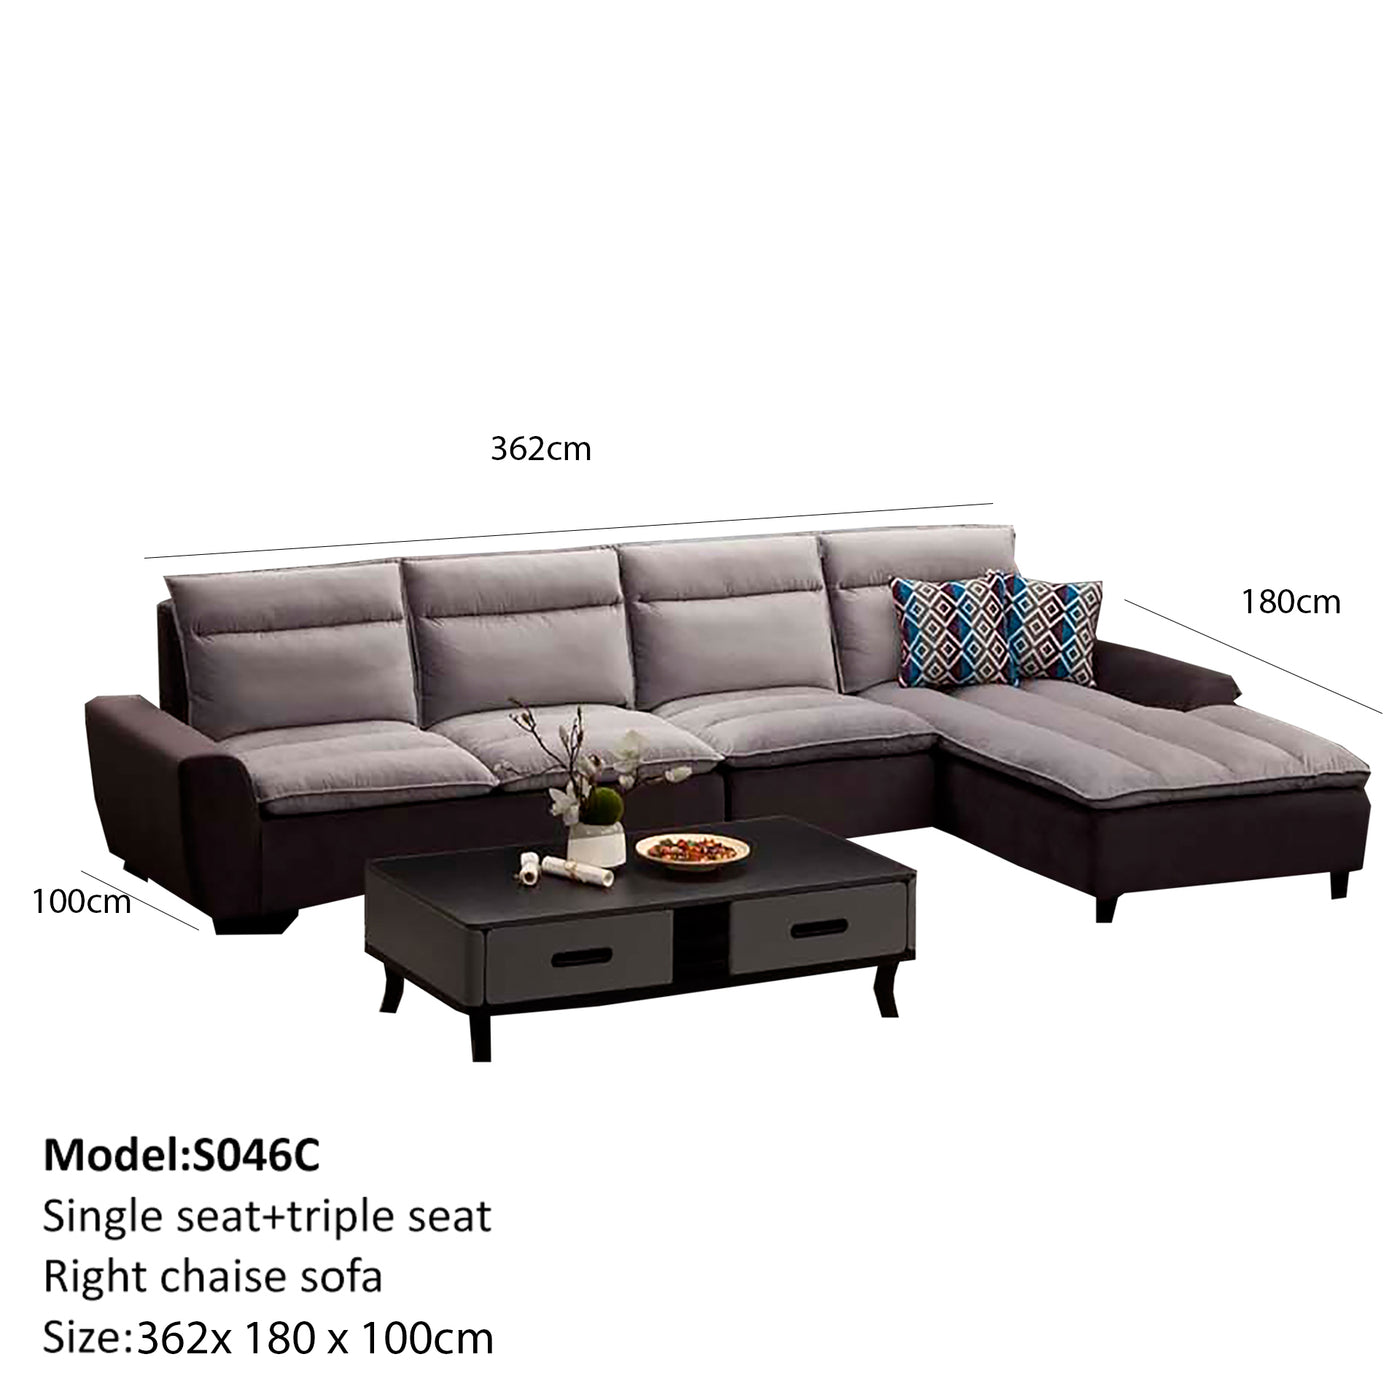 Velvet Fabric Single Seat Triple Seat Right Chaise Sofa Bed Iii